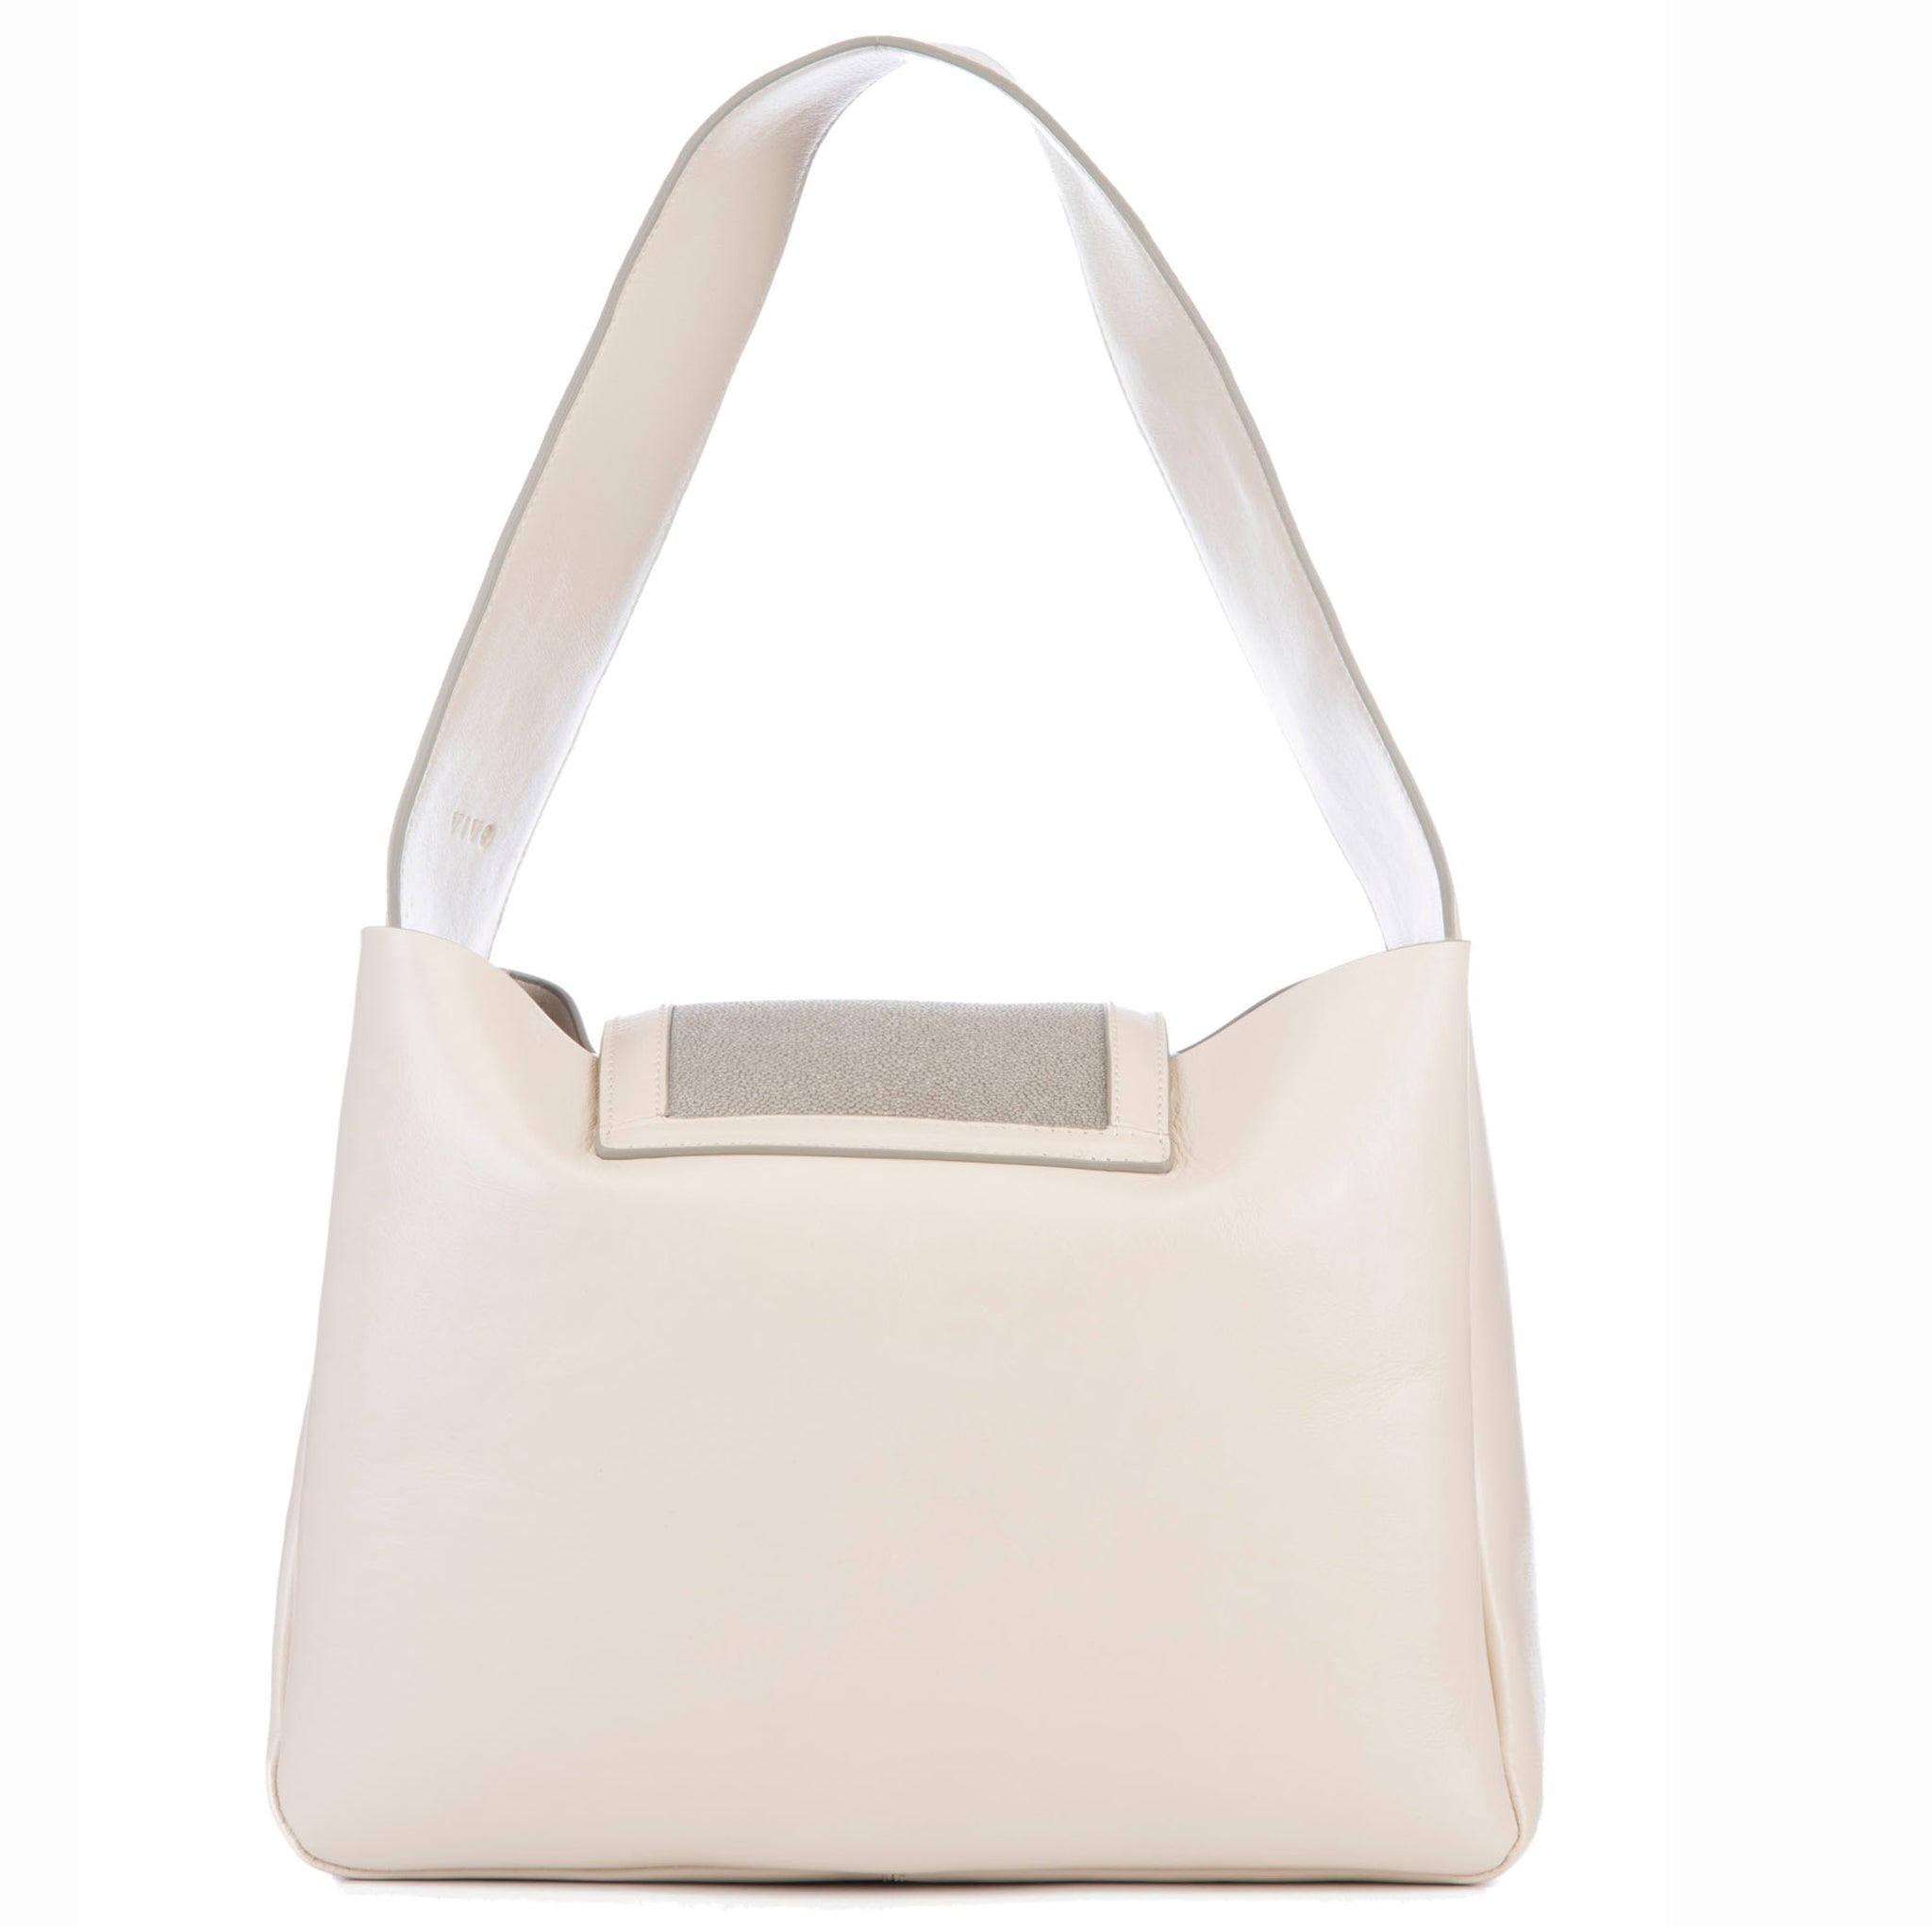 Eve Ivory Leather Shoulder Tote With Cement Shagreen Flap And Leather Knot Detail Back View - Vivo Direct